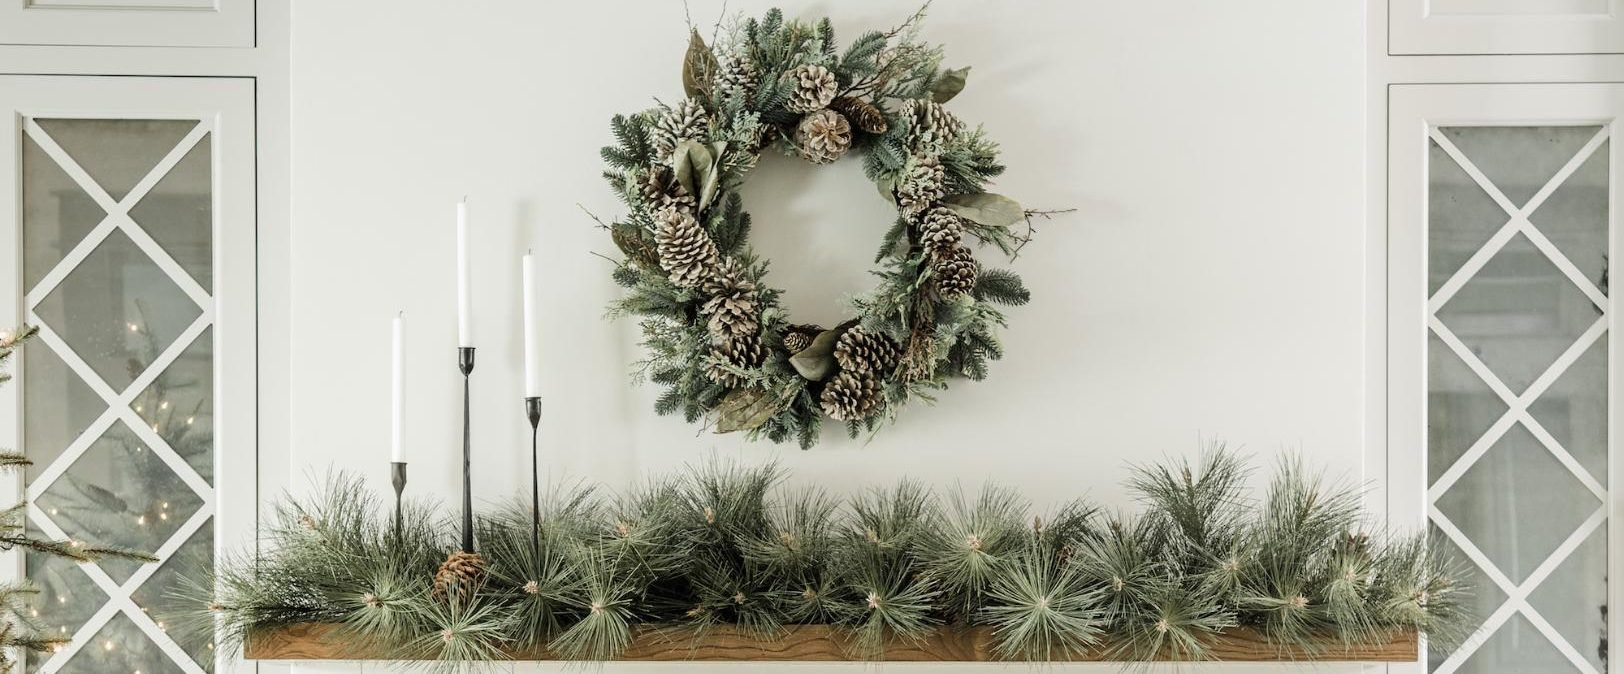 How to Decorate with Garland | Christmas | Pinterest | Decor ...